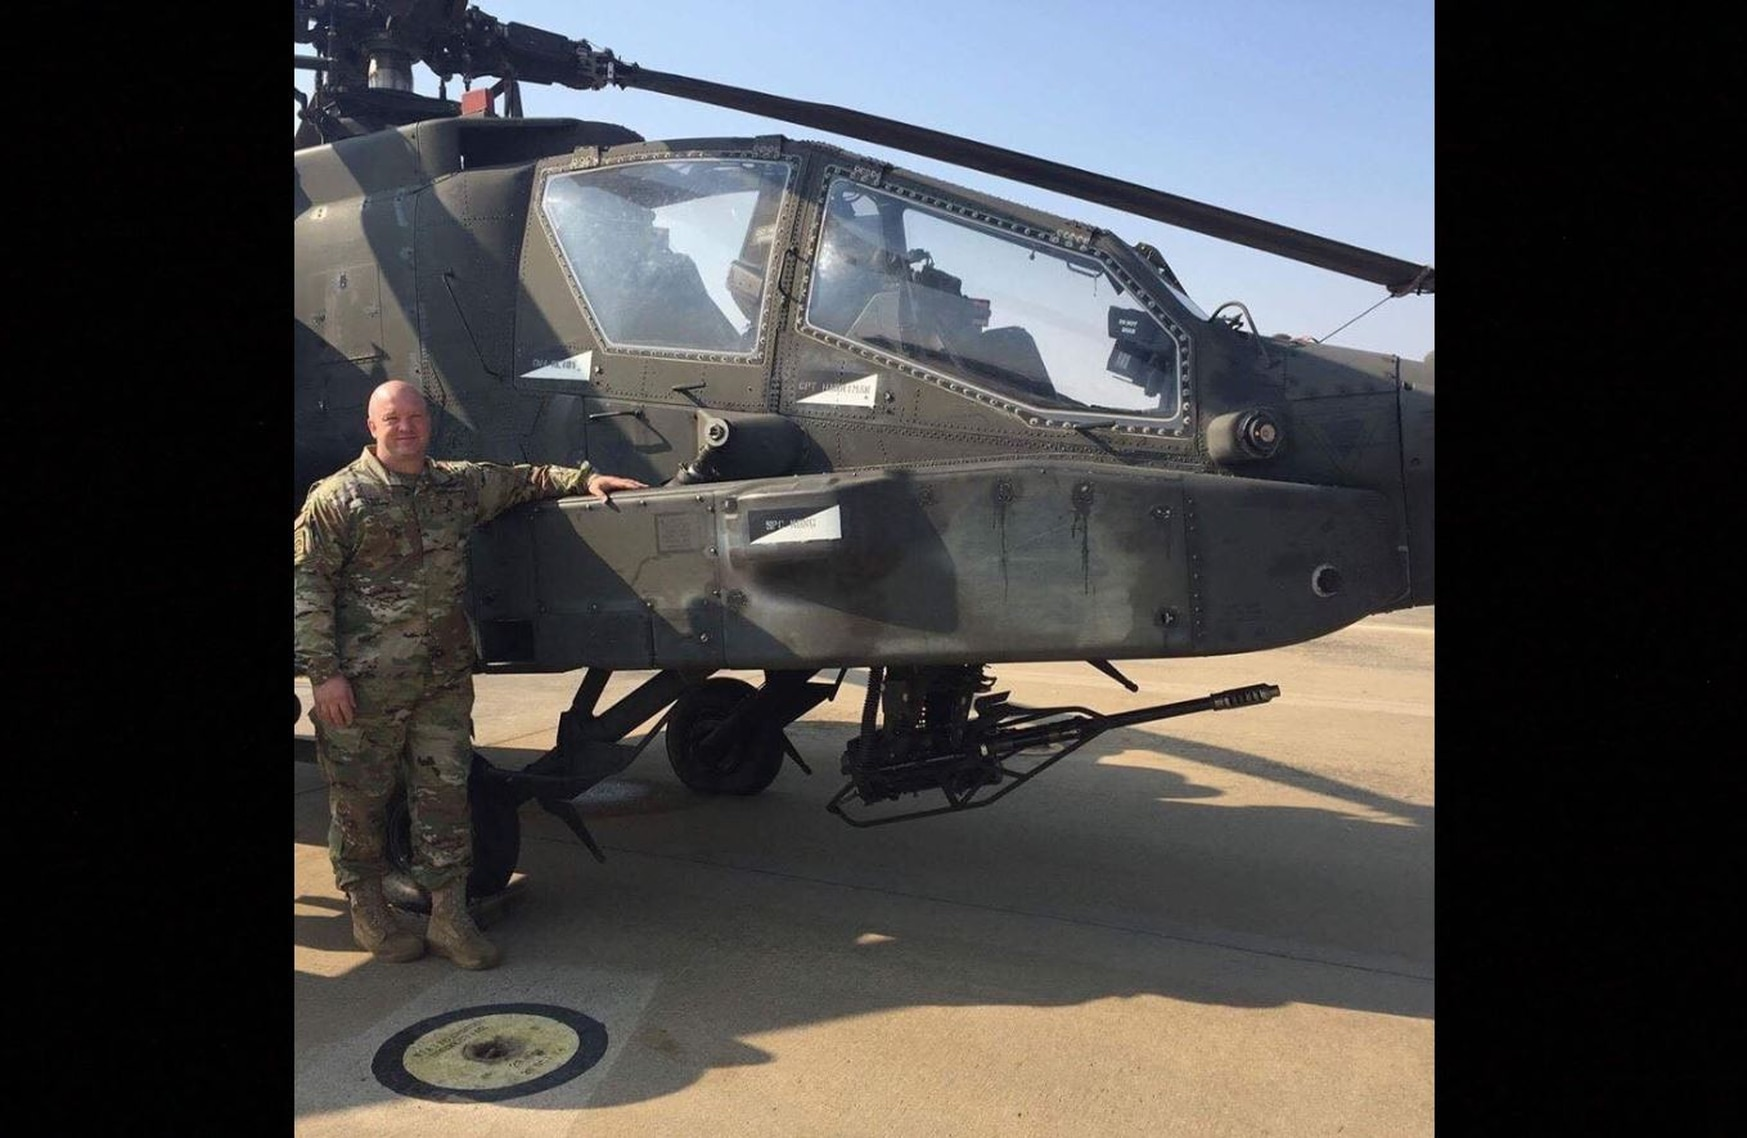 CW4 Paul J. Reidy stands next to his AH-64 Apache, the attack helicopter in which he flew nearly 1,000 hours of combat. (Jennifer Reidy/Courtesy photo)